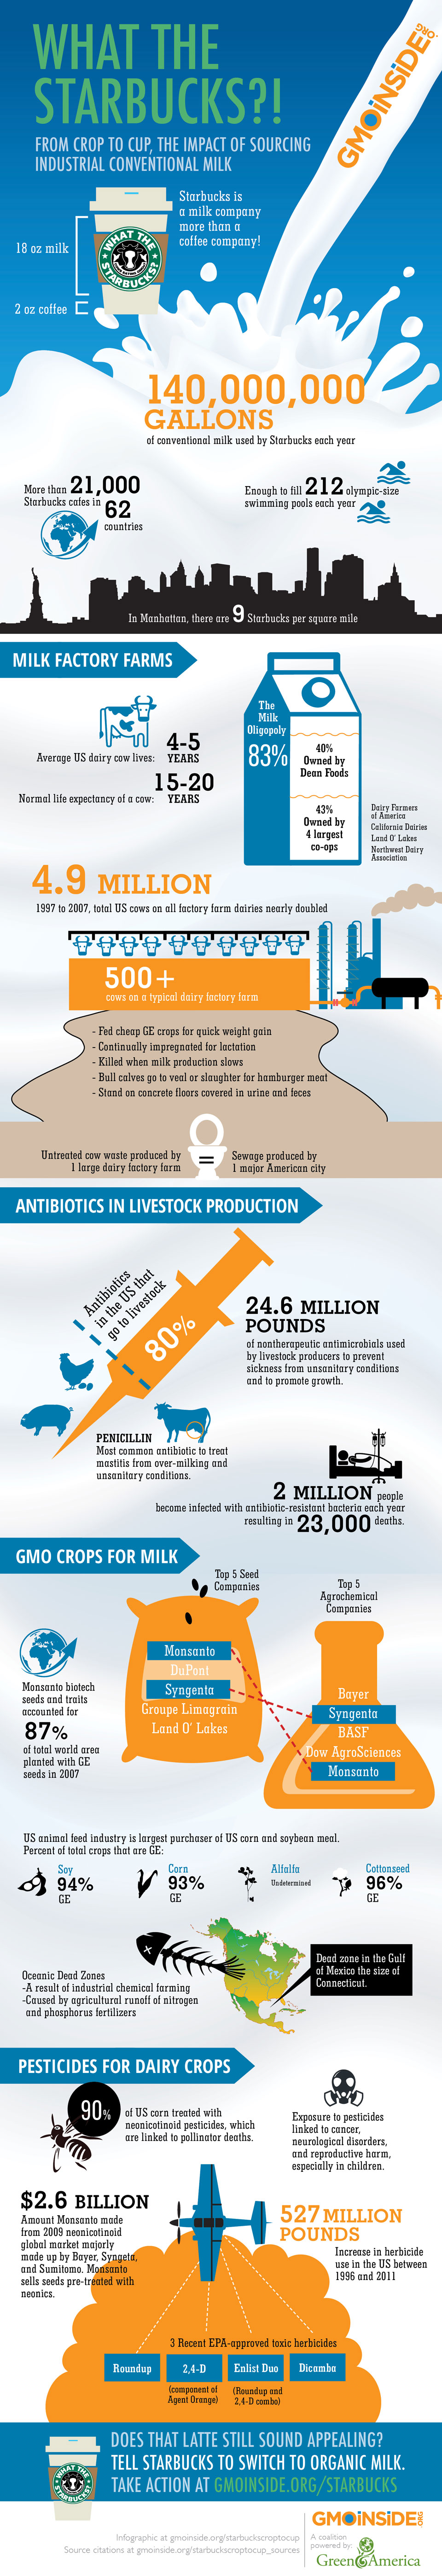 GMO-Inside-Starbucks-Crop-to-Crop-Infographic-960w.jpg